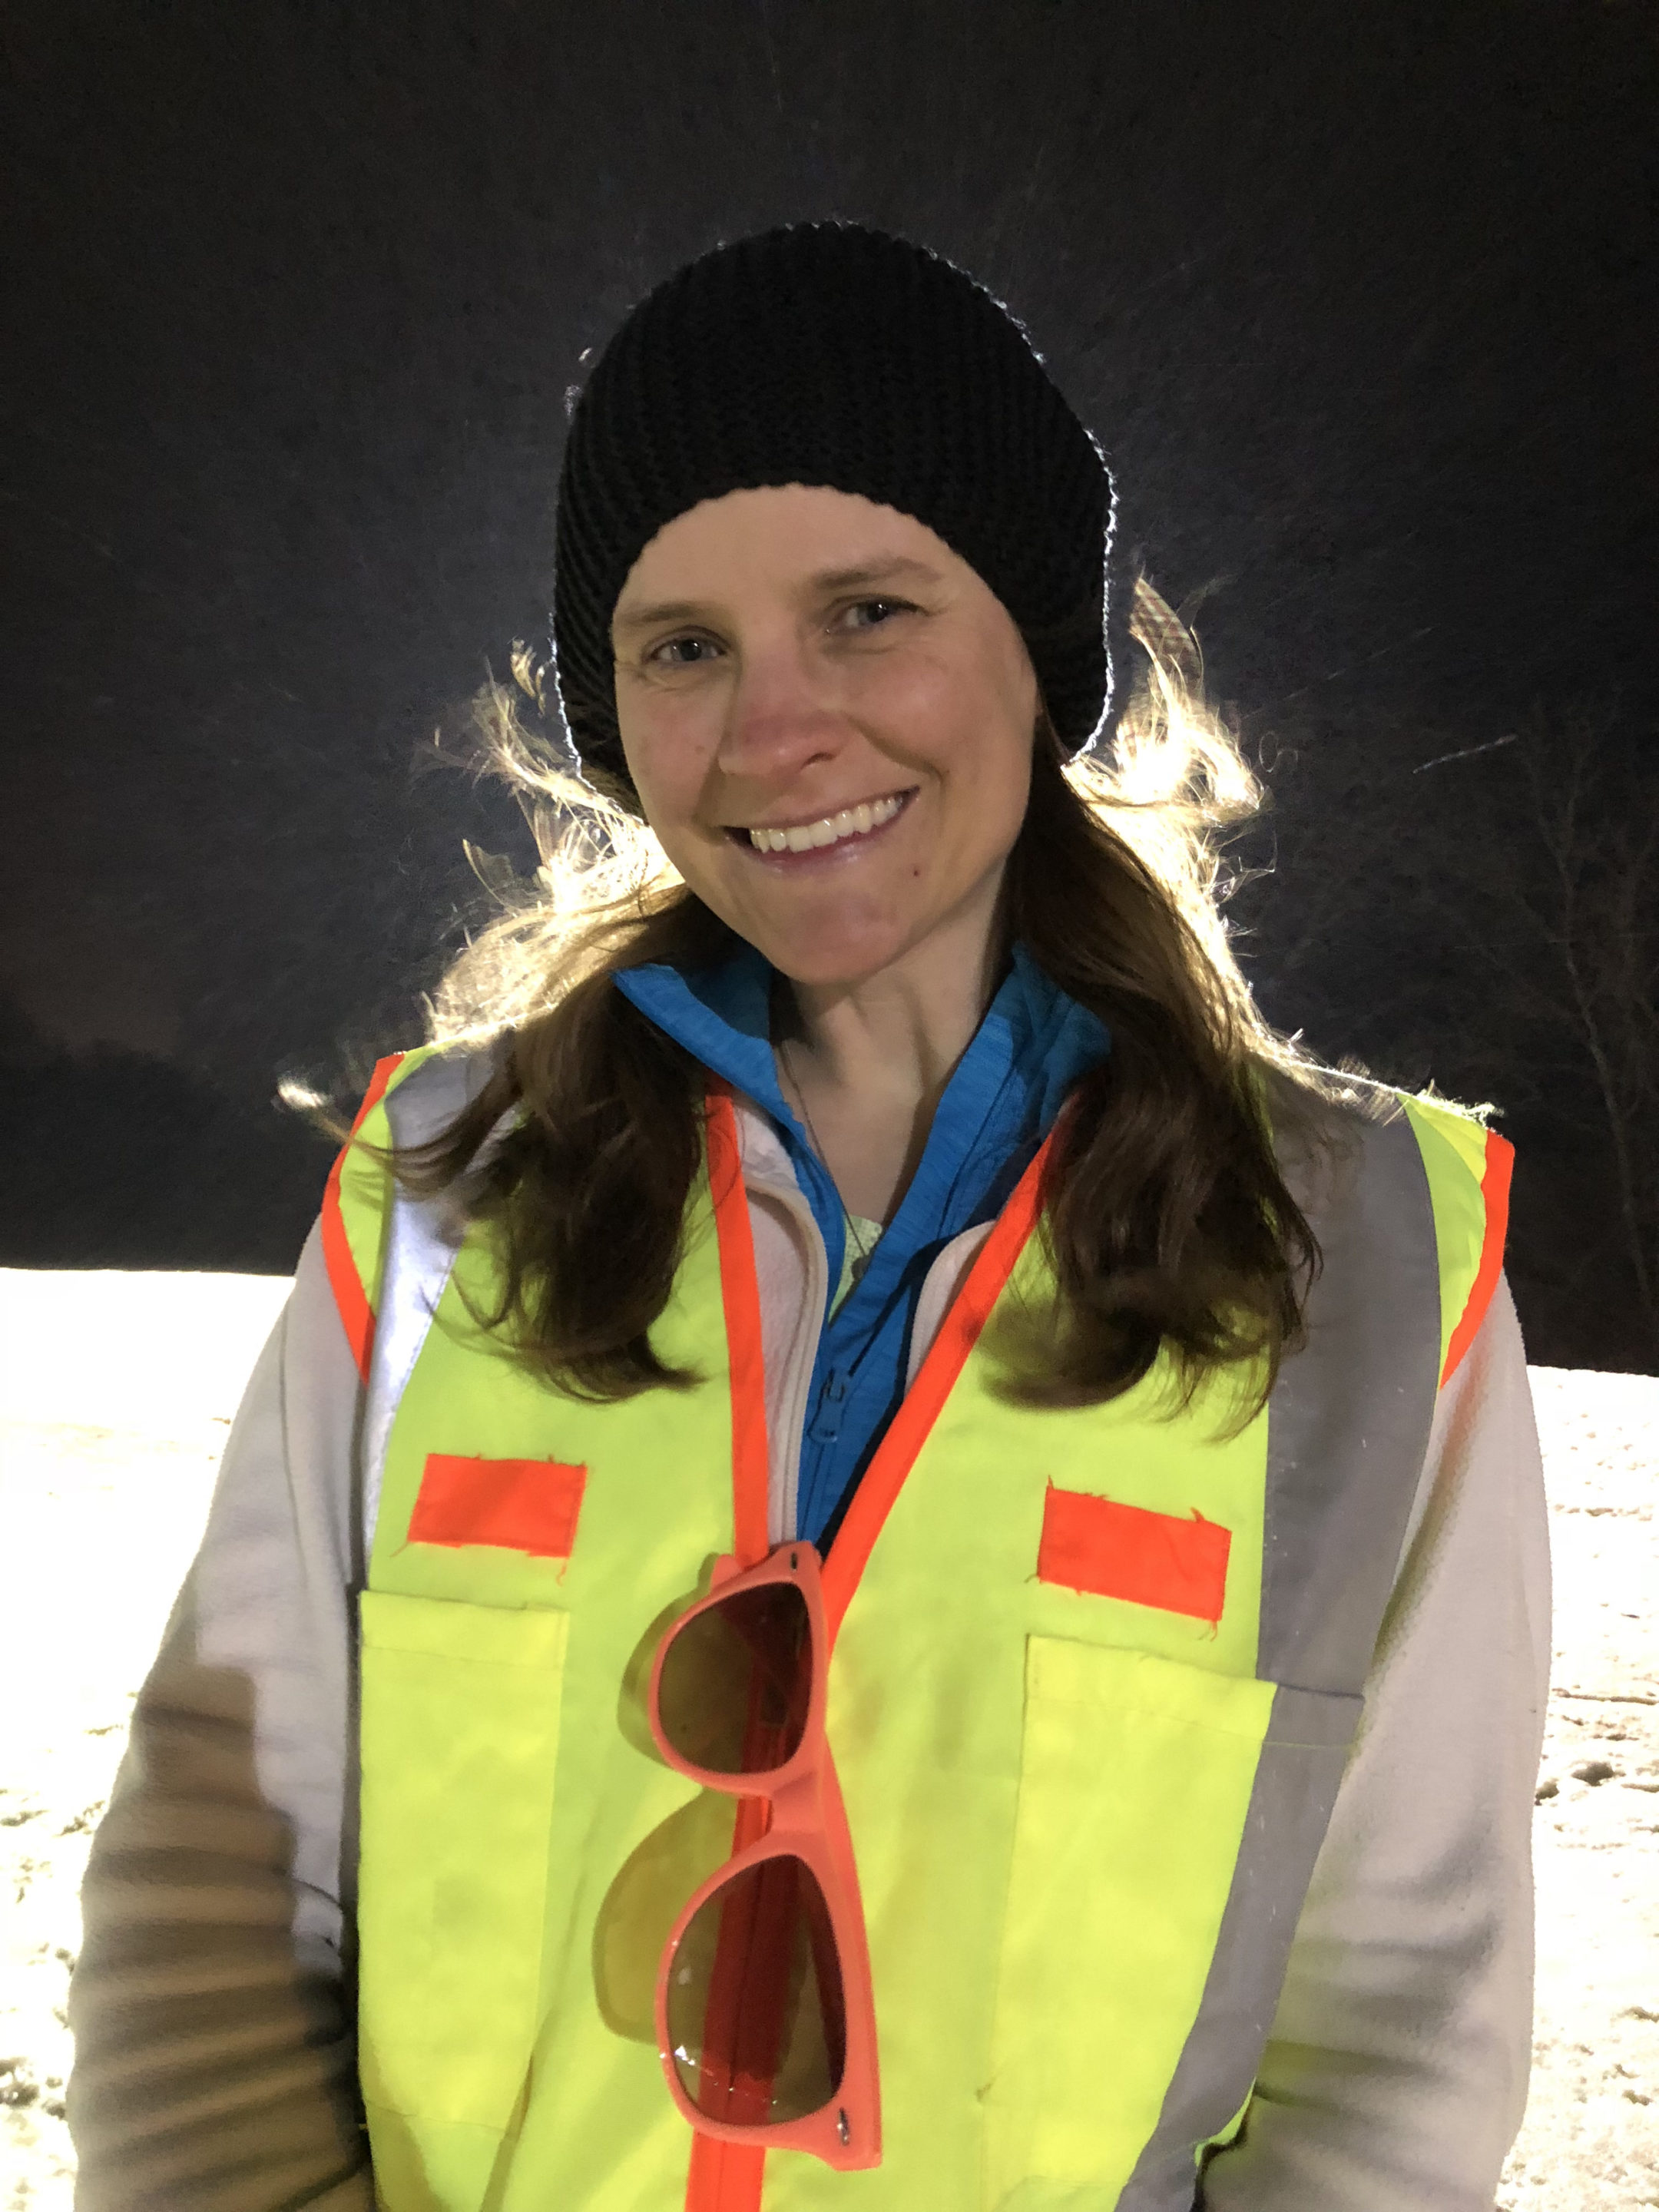 Photo of Braille Music Teacher wearing a bright yellow ski vest with orange reflective tape and a winer stocking cap.